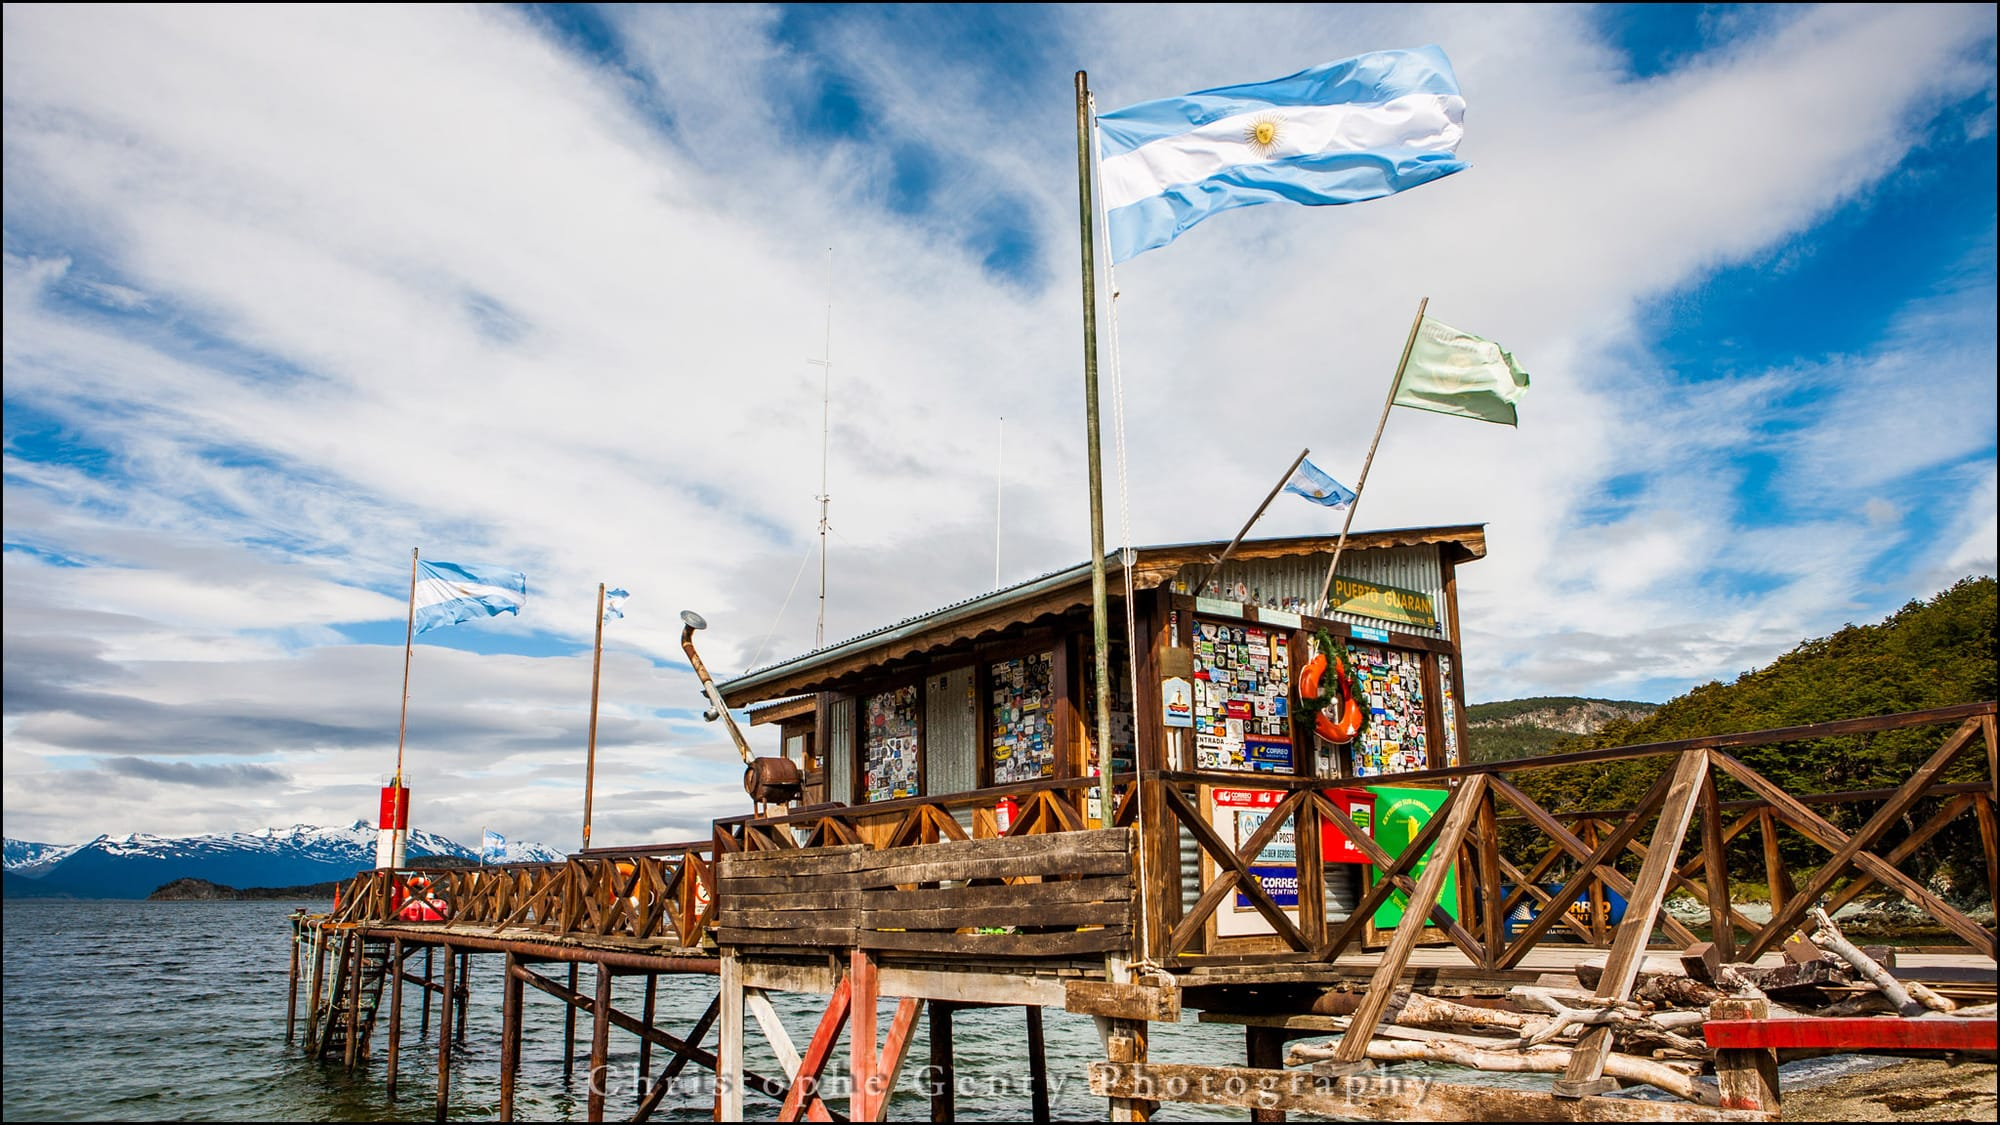 Argentina's southernmost  Post Office at Puerto Guarani Tierra del Fuego National Park, Argentina - December 2015